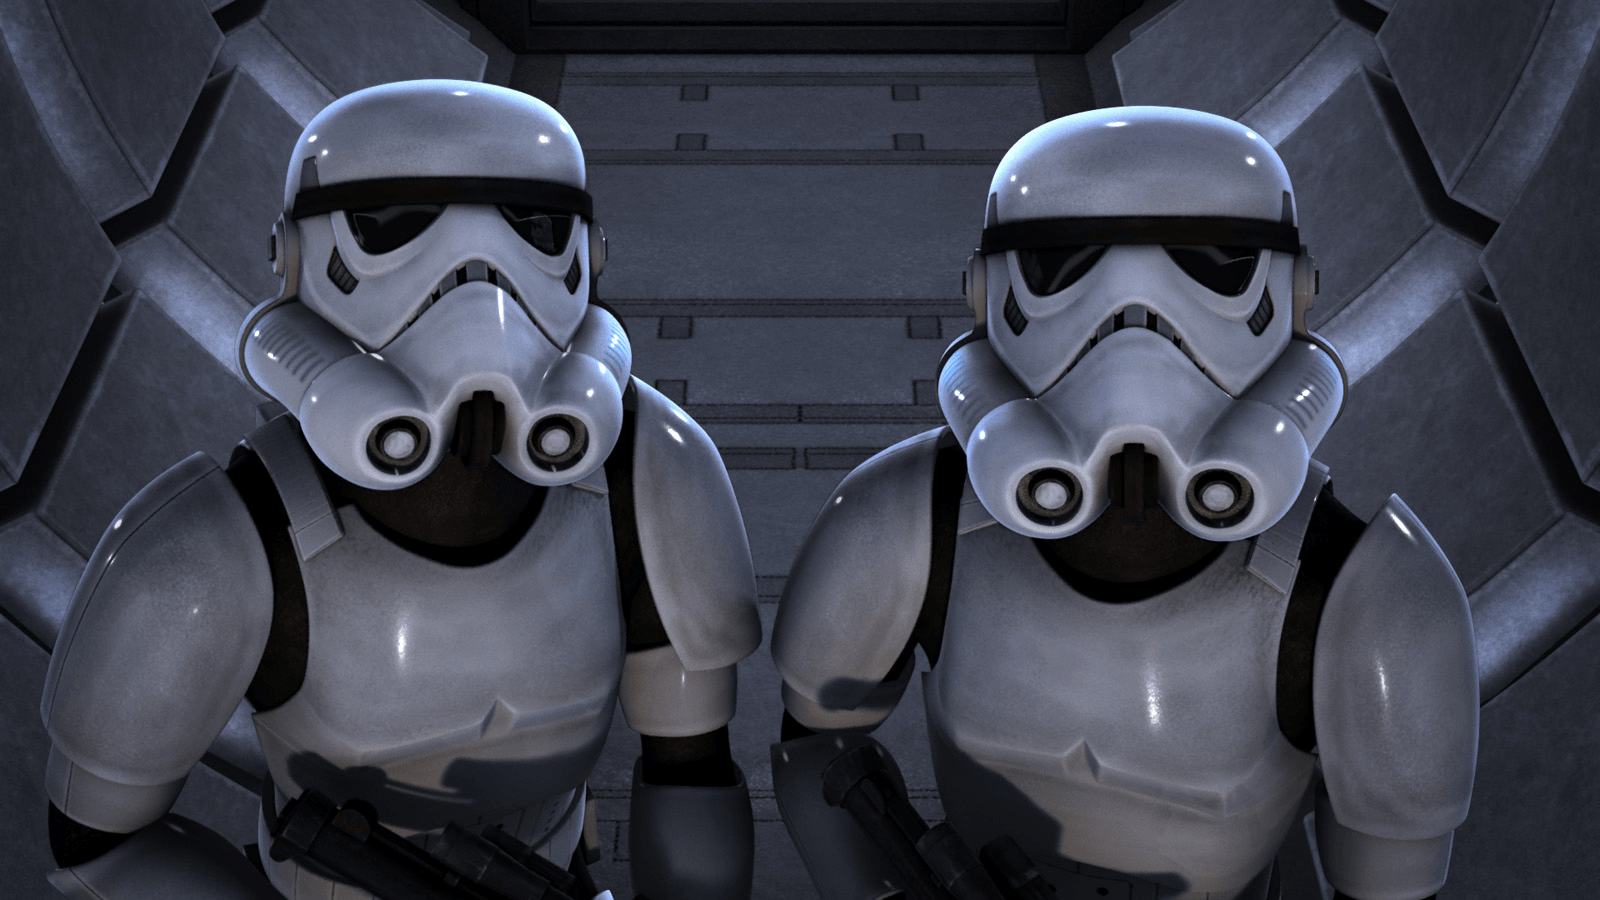 Stormtroopers Computer Wallpapers, Desktop Backgrounds | 1600x900 ...